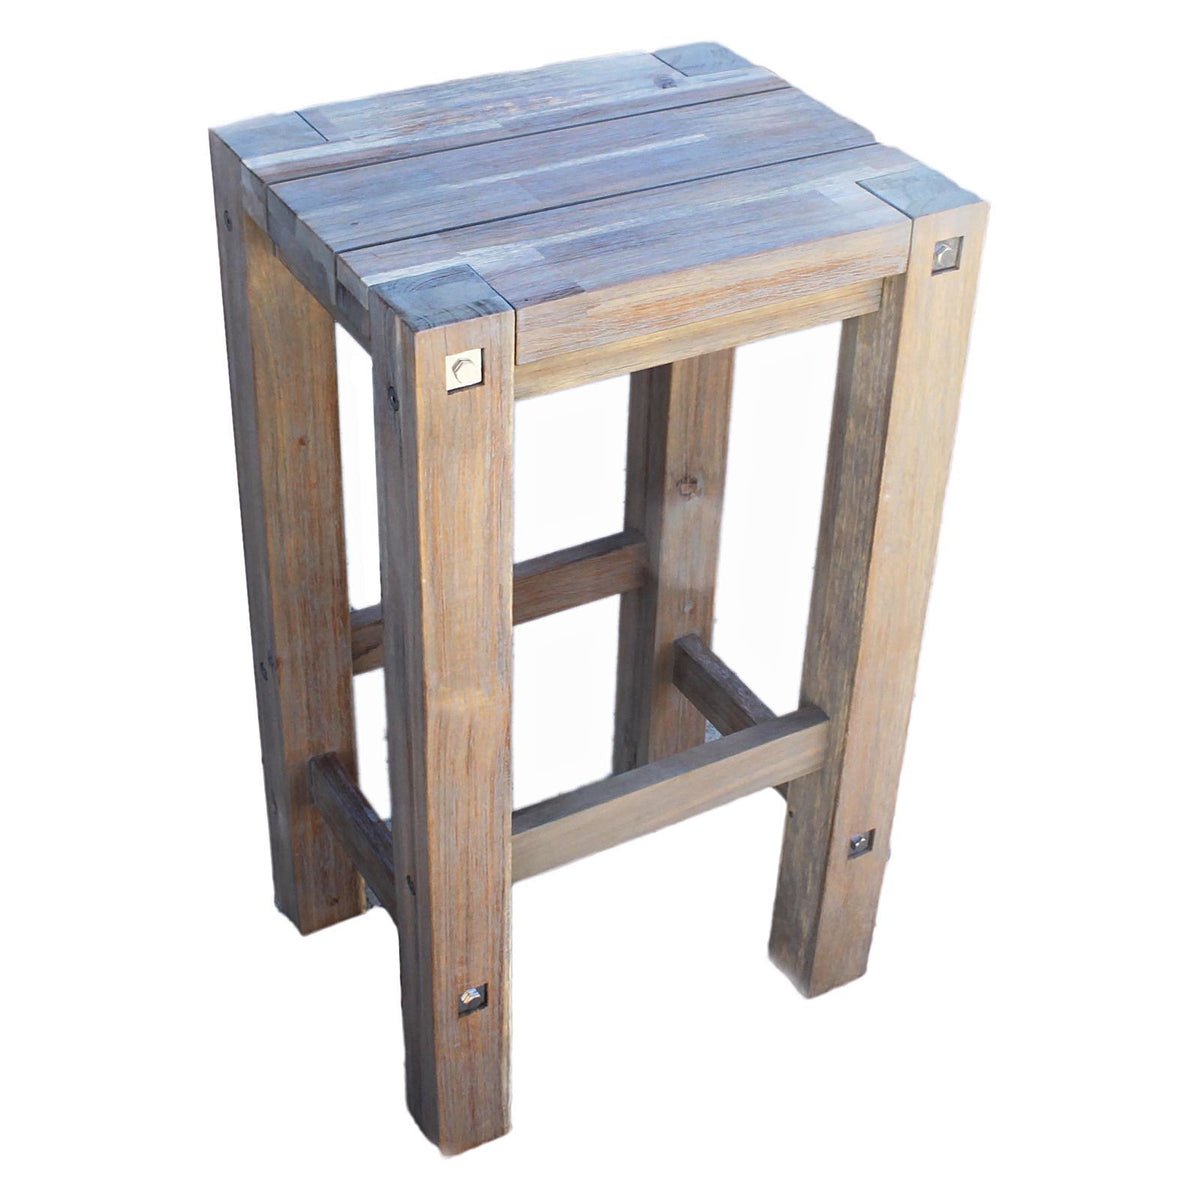 Sturdy Outdoor Bar Stool, Grey Brush - Outdoor Living Essentials